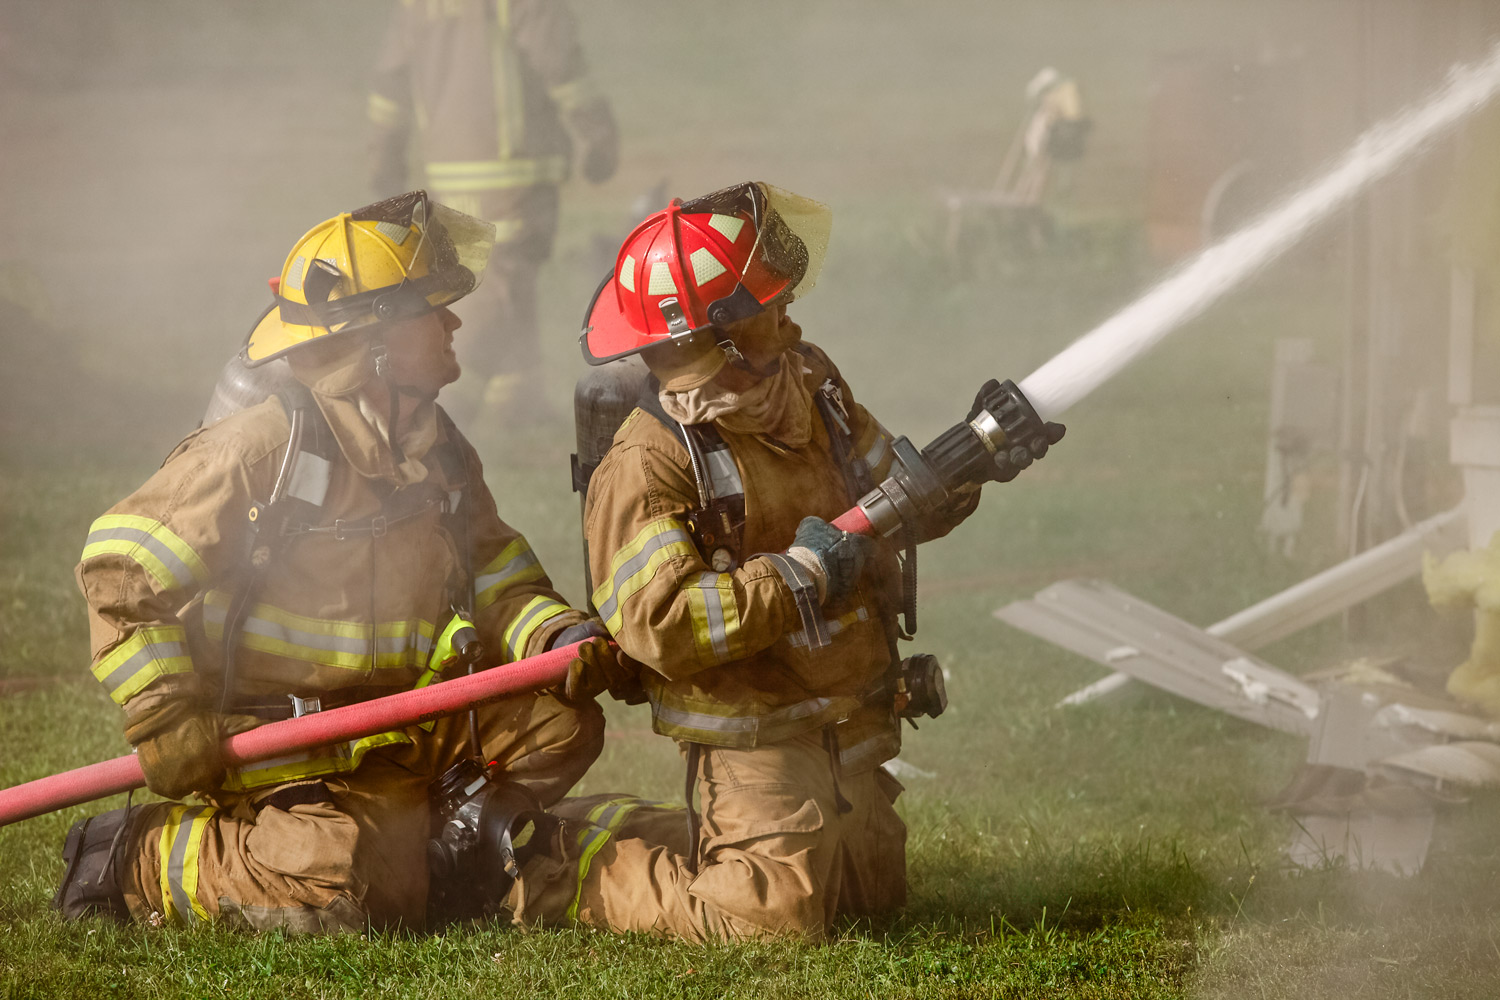 Dousing the Flames